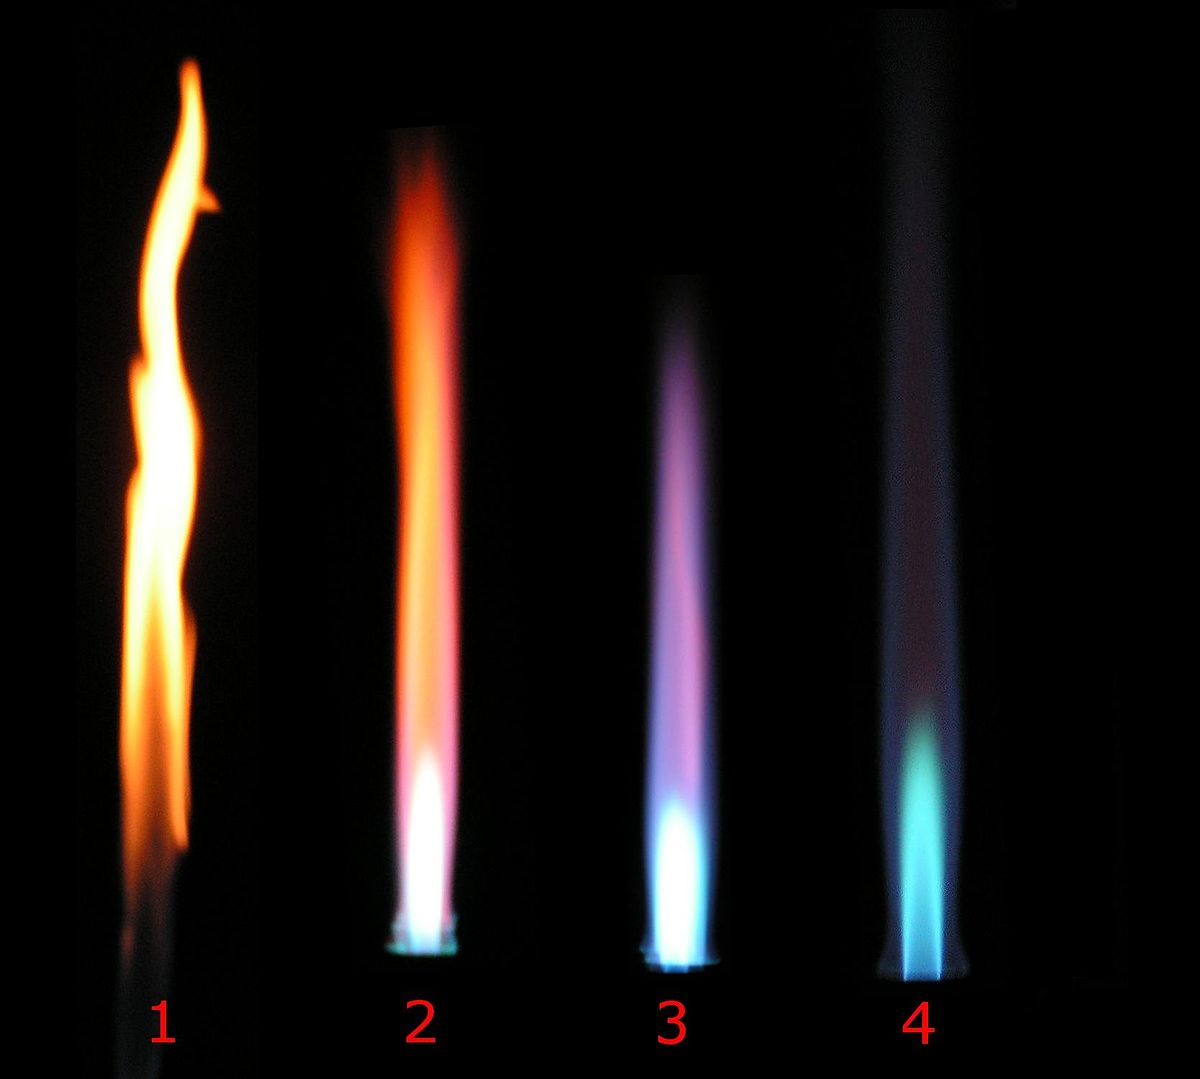 bunsen burner lab Bunsen burner lab – data chart and questions position a position b position c position d (base of flame) (tip of inner blue flame) (top of flame) (2 cm above flame).